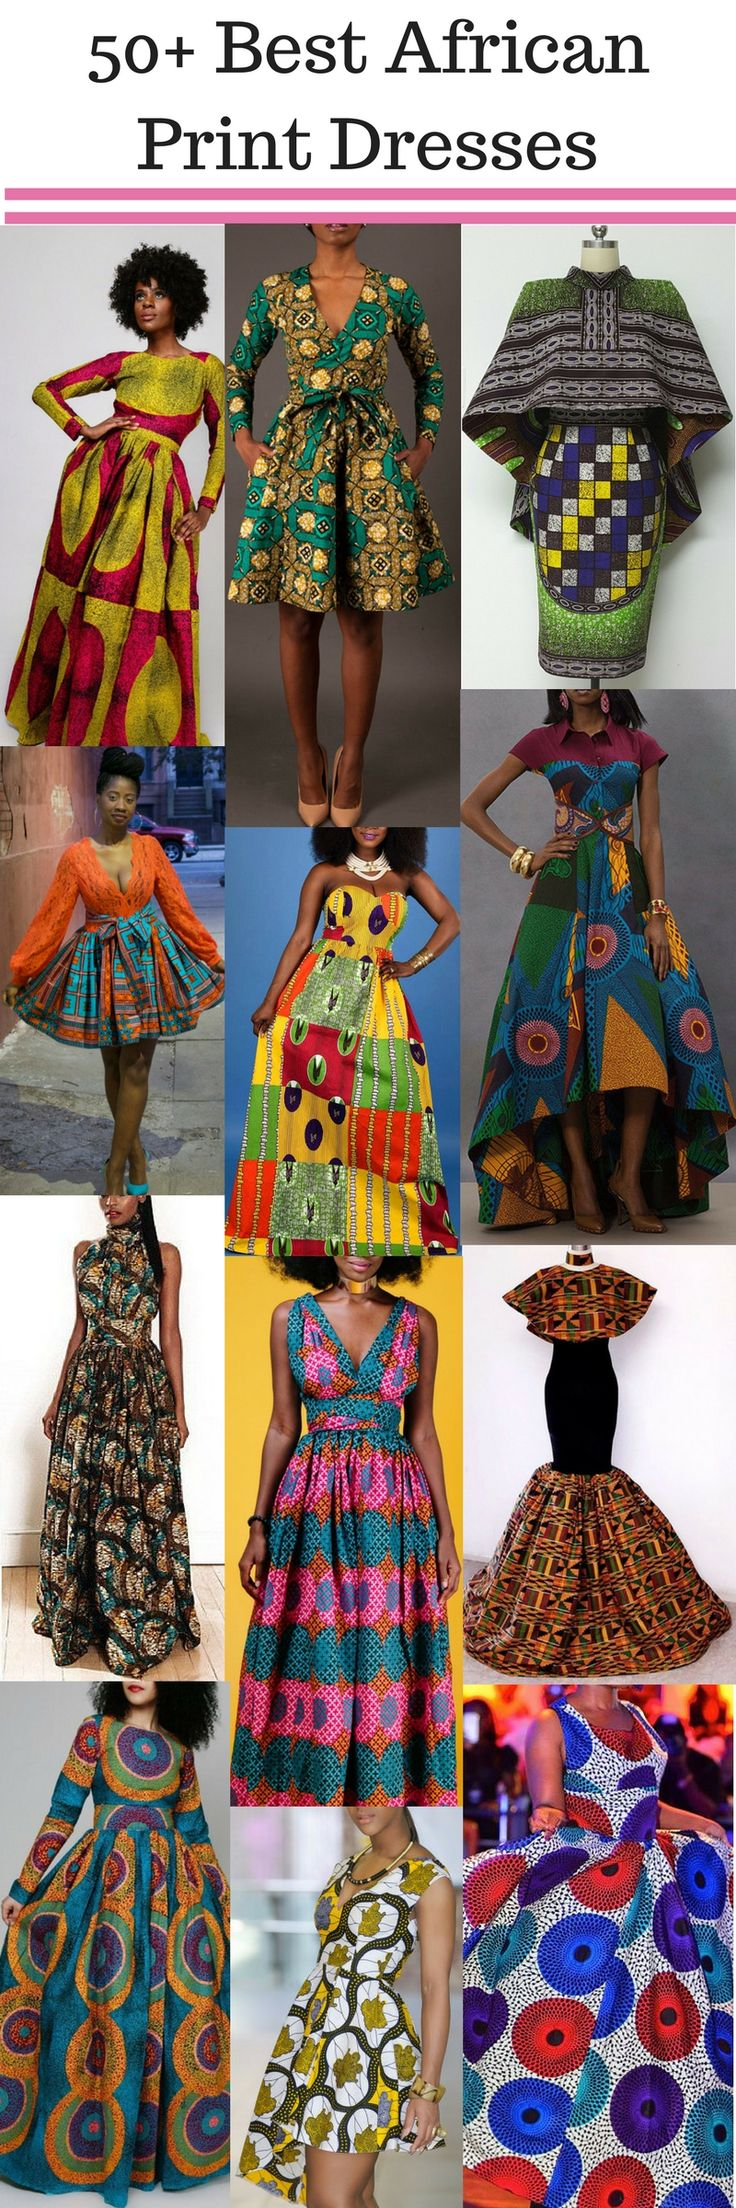 50+ Best African Print Dresses & where to get them  ~DKK ~African fashion, Ankara, kitenge, African women dresses, African prints, African men's fashion, Nigerian style, Ghanaian fashion.